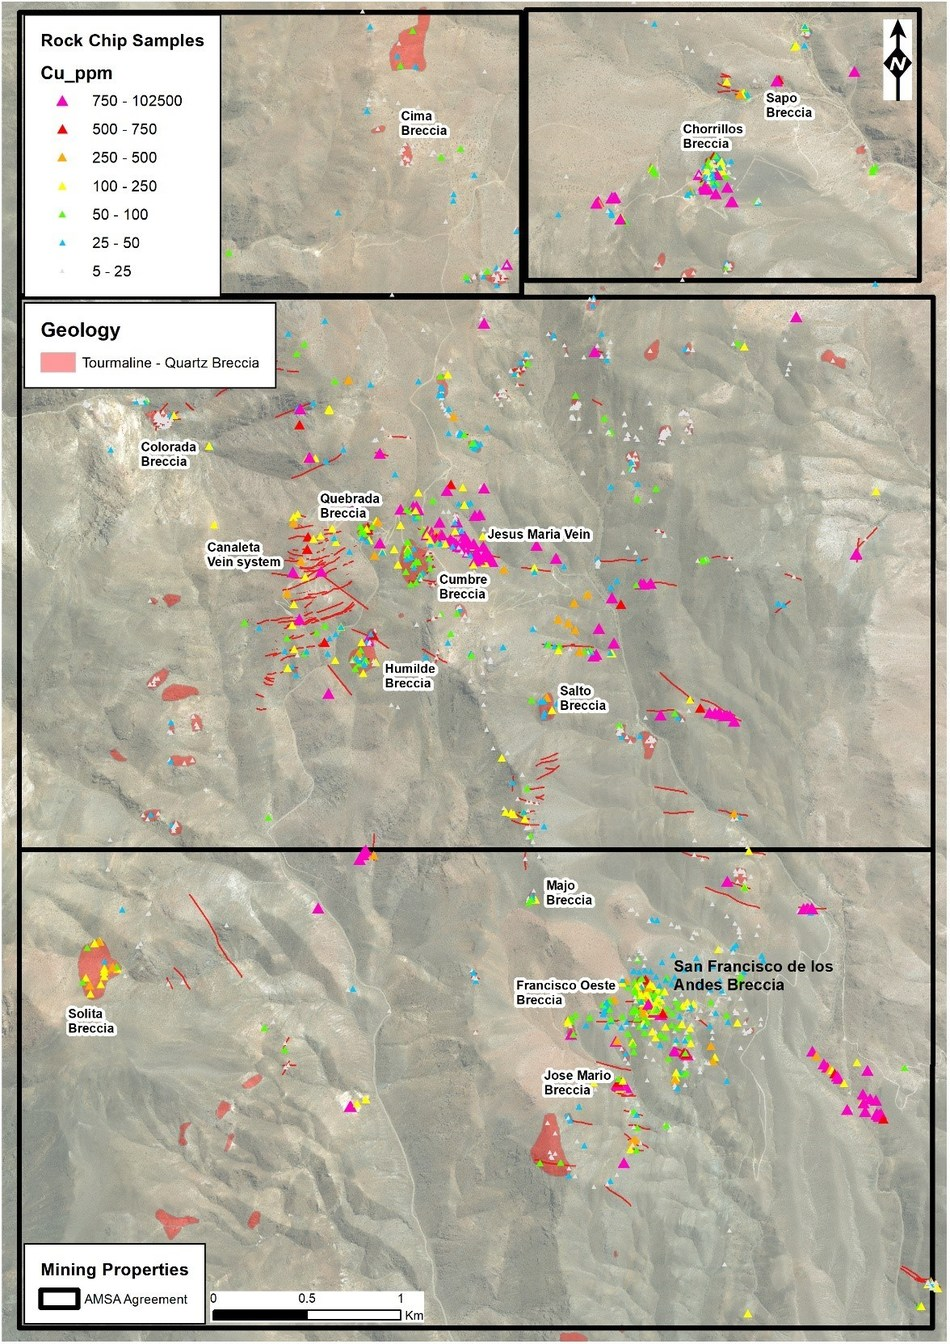 Figure 4: Rock chip copper results from the project area. Deep weathering results in lower copper grades in surface samples relative to the primary sulphide zones at depth, but the surface grades still allow for the detection and prioritization of mineralised breccias. (CNW Group/Turmalina Metals Corp.)